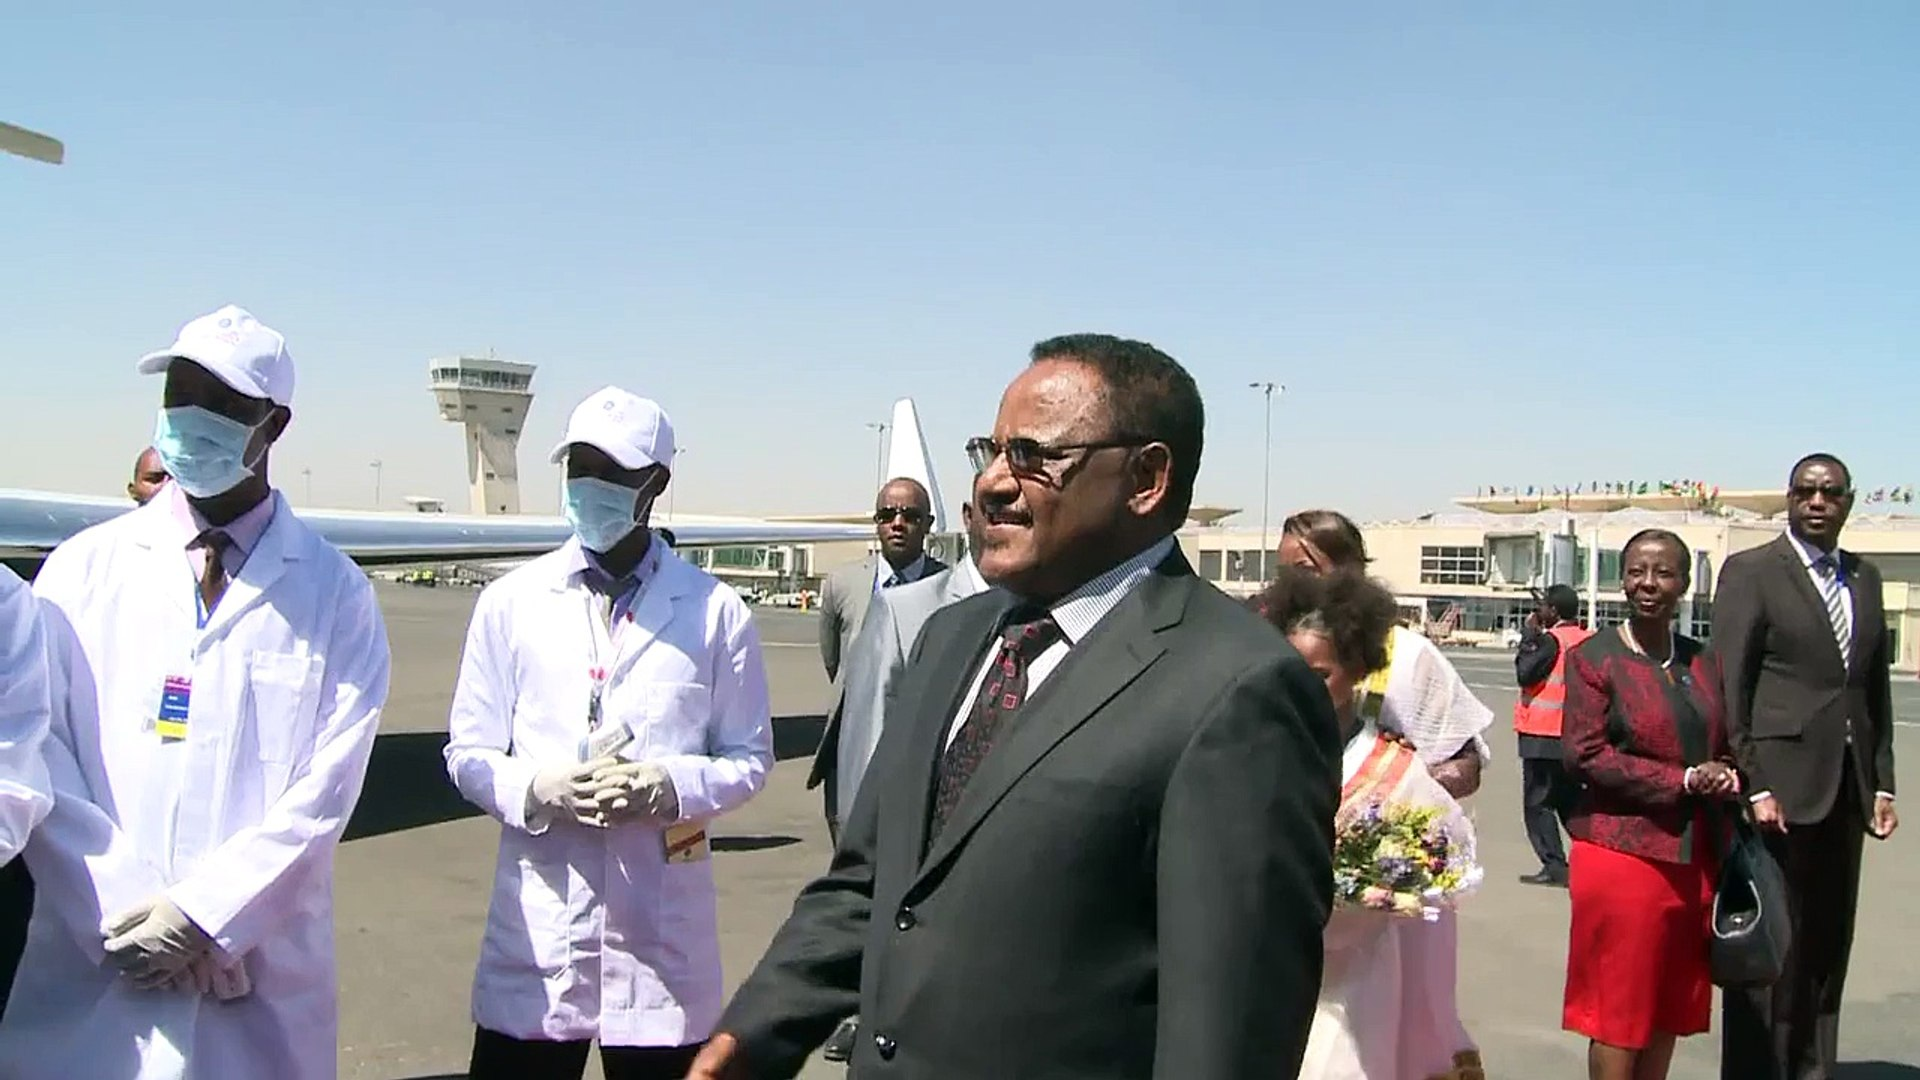 President Kagame arrives in Addis Ababa to attend African Union Summit- Addis Ababa, 28 January